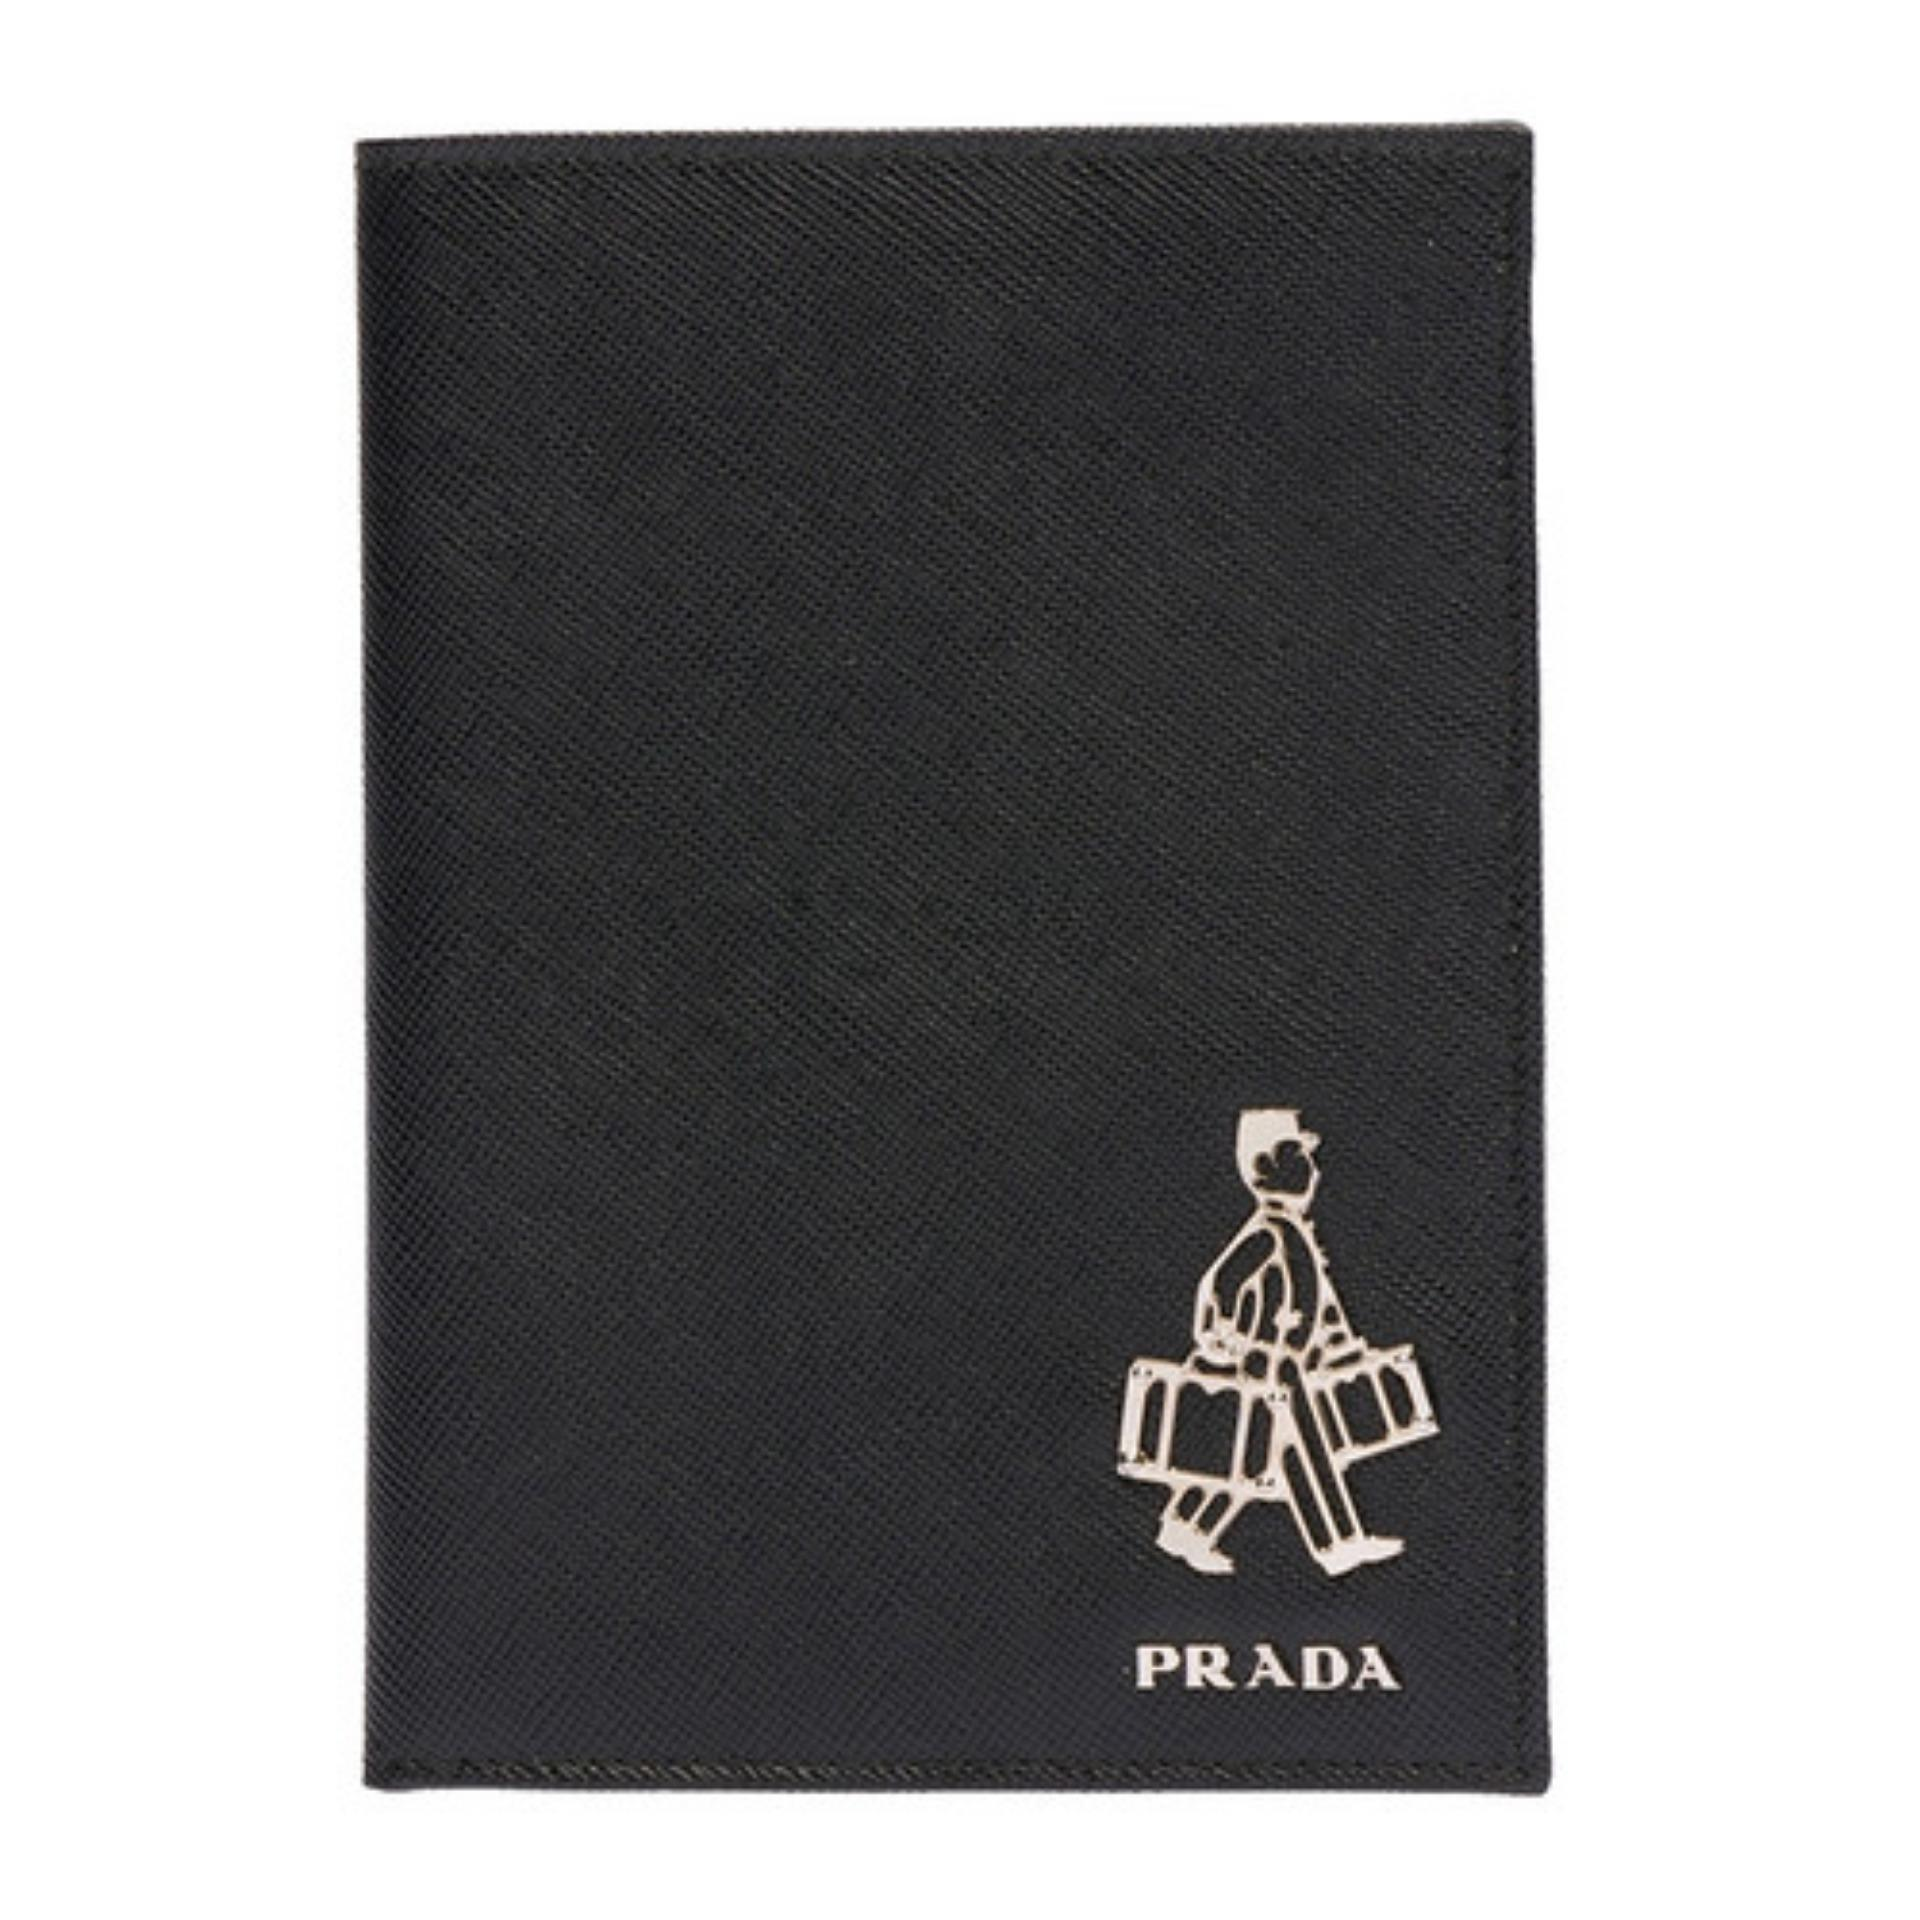 71a1b3d9f2fa Prada Saffiano 'Porter' Card Holder (Nero) # 2MV4129Z2F0002